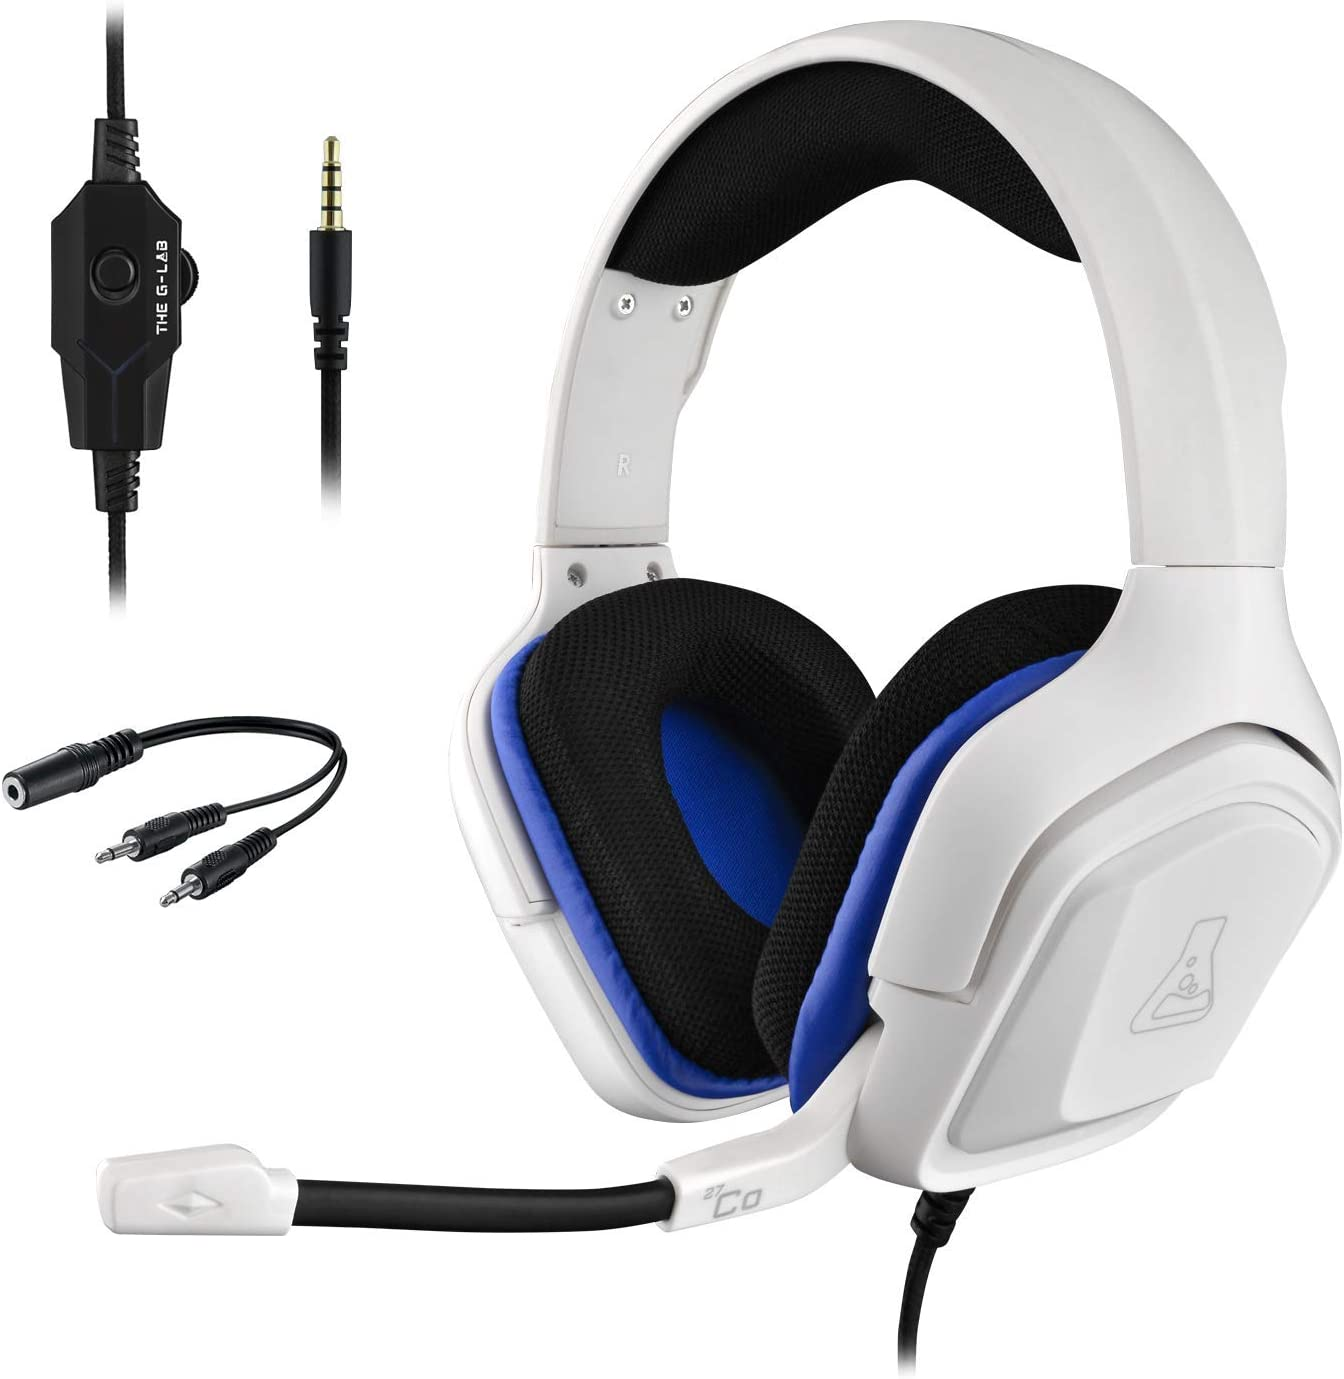 THE G-LAB Korp COBALT Auriculares Gaming - Auriculares estéreo, Ultra Ligero, Auriculares con Micrófono, Jack de 3.5 mm para PC, PS4, Xbox One, Mac, Tablet PC, Switch, Smartphone (Blanco)